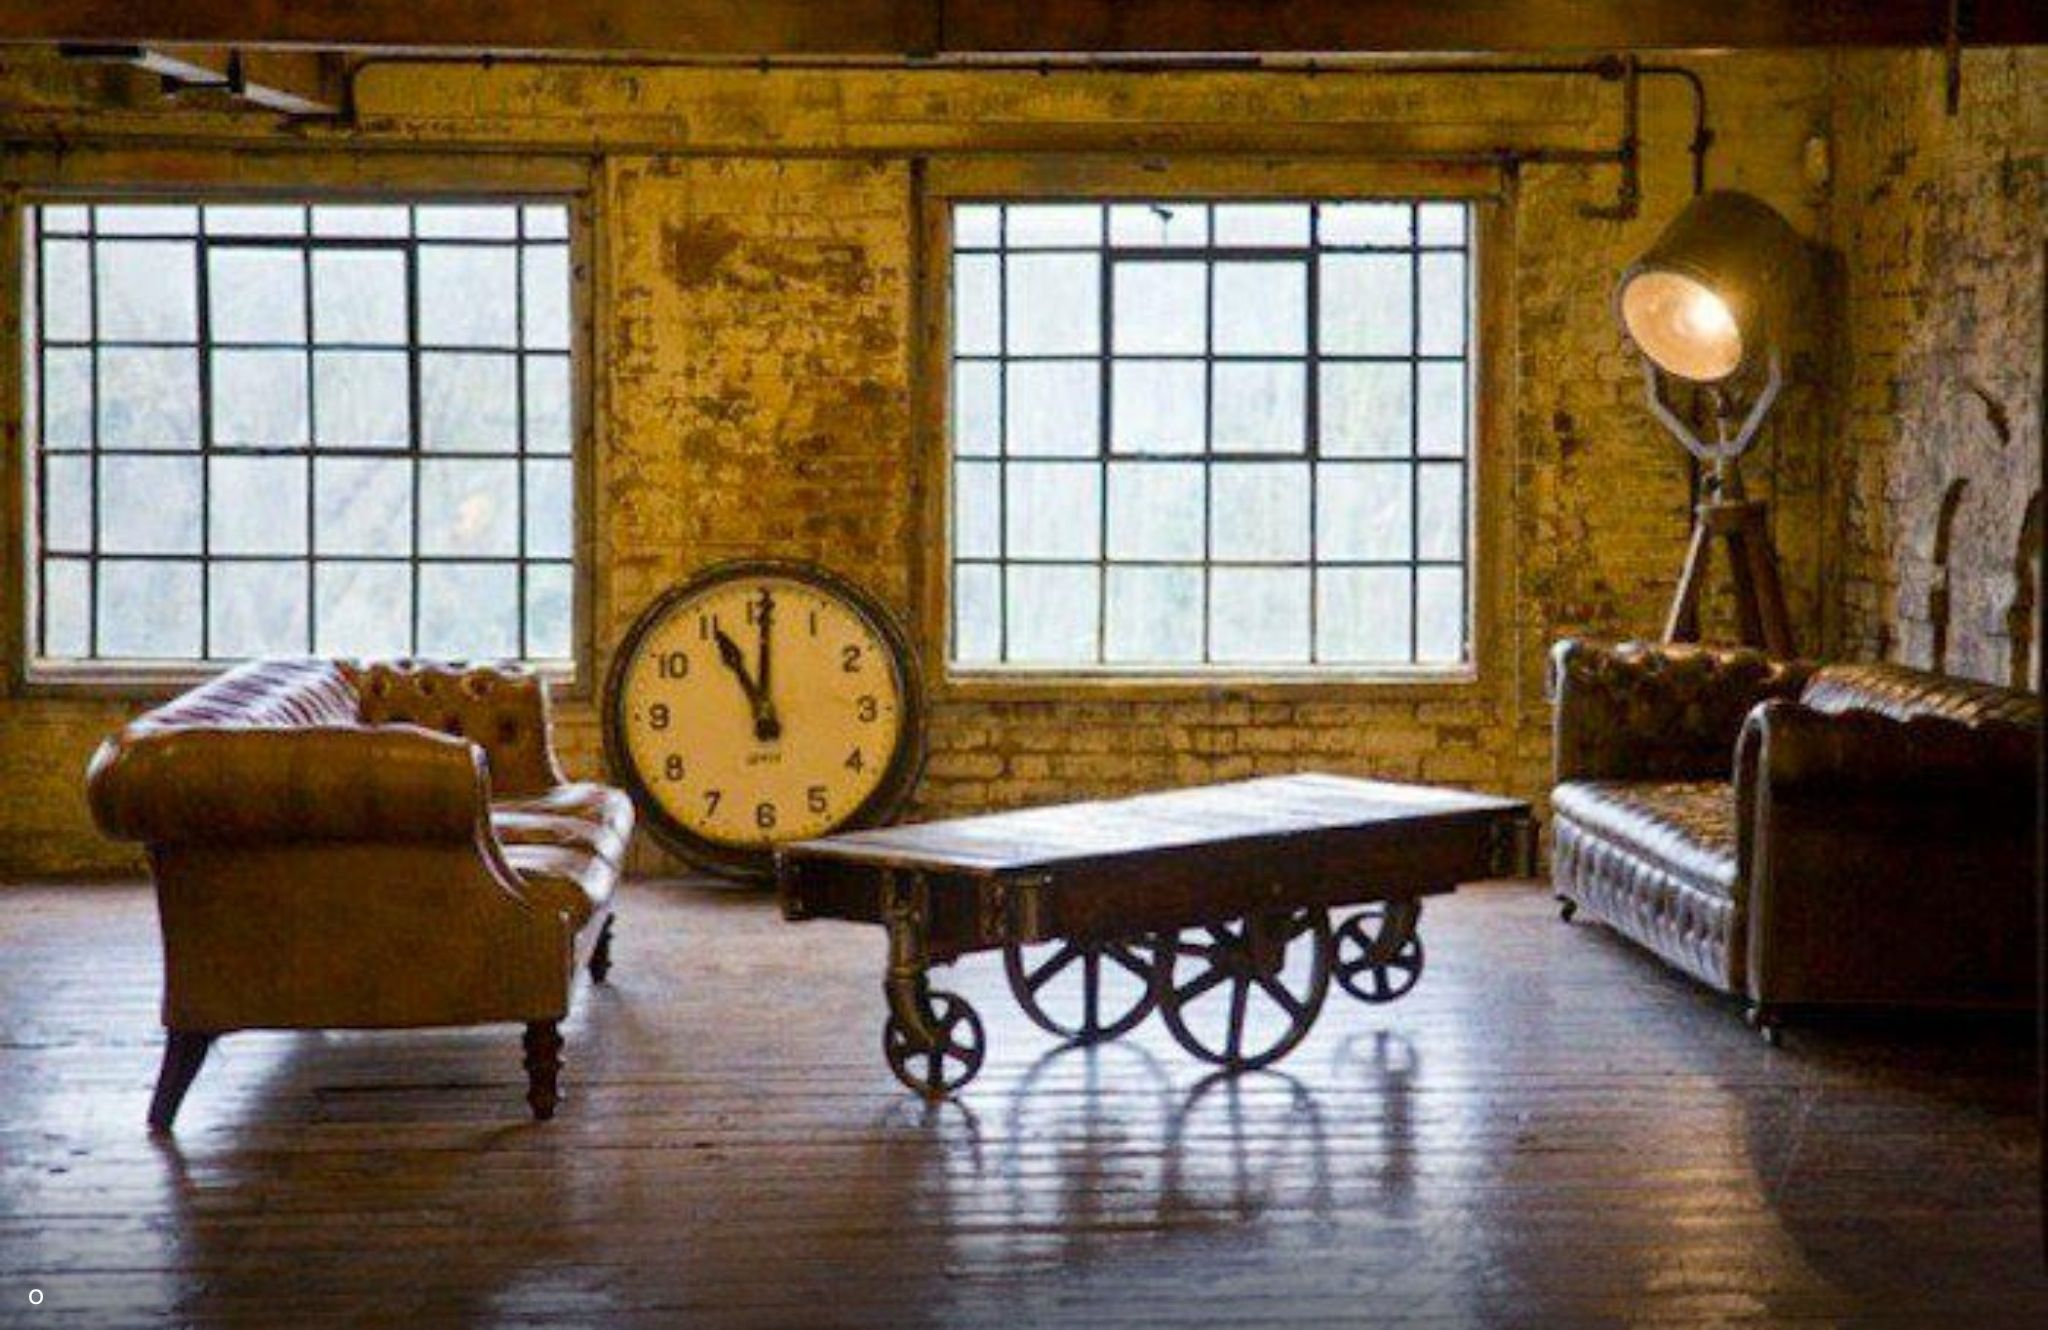 Rustic Industrial Loft Living Room I Want To Go With Something A Little Like T Rustic Industrial Living Room Industrial Living Room Design Rustic Living Room #rustic #industrial #living #room #decor